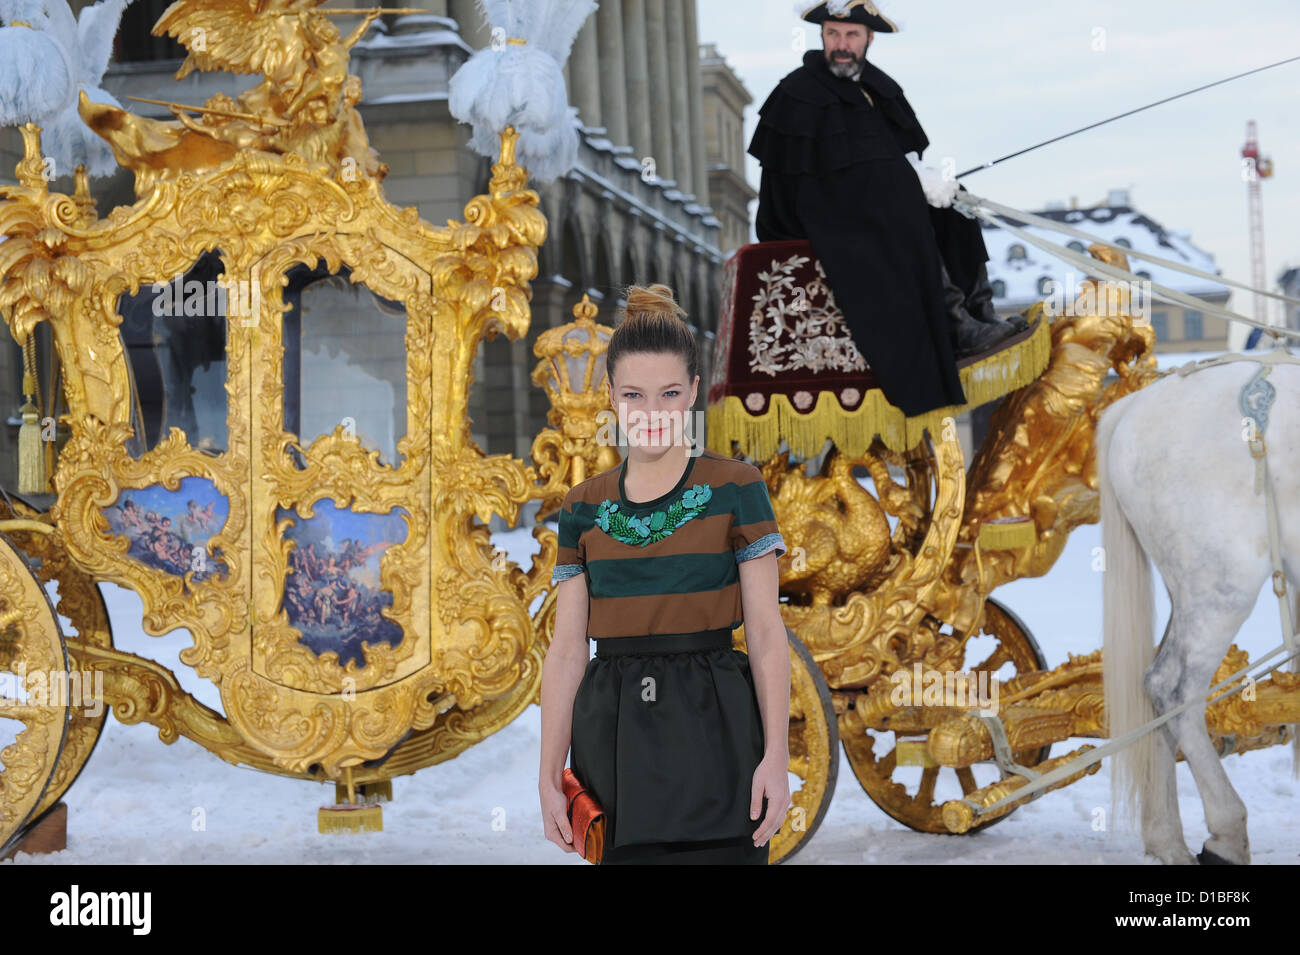 Lead actress Hannah Herzsprung (Elisabeth,Empress of Austria) stands in front of the golden coach from the - Stock Image